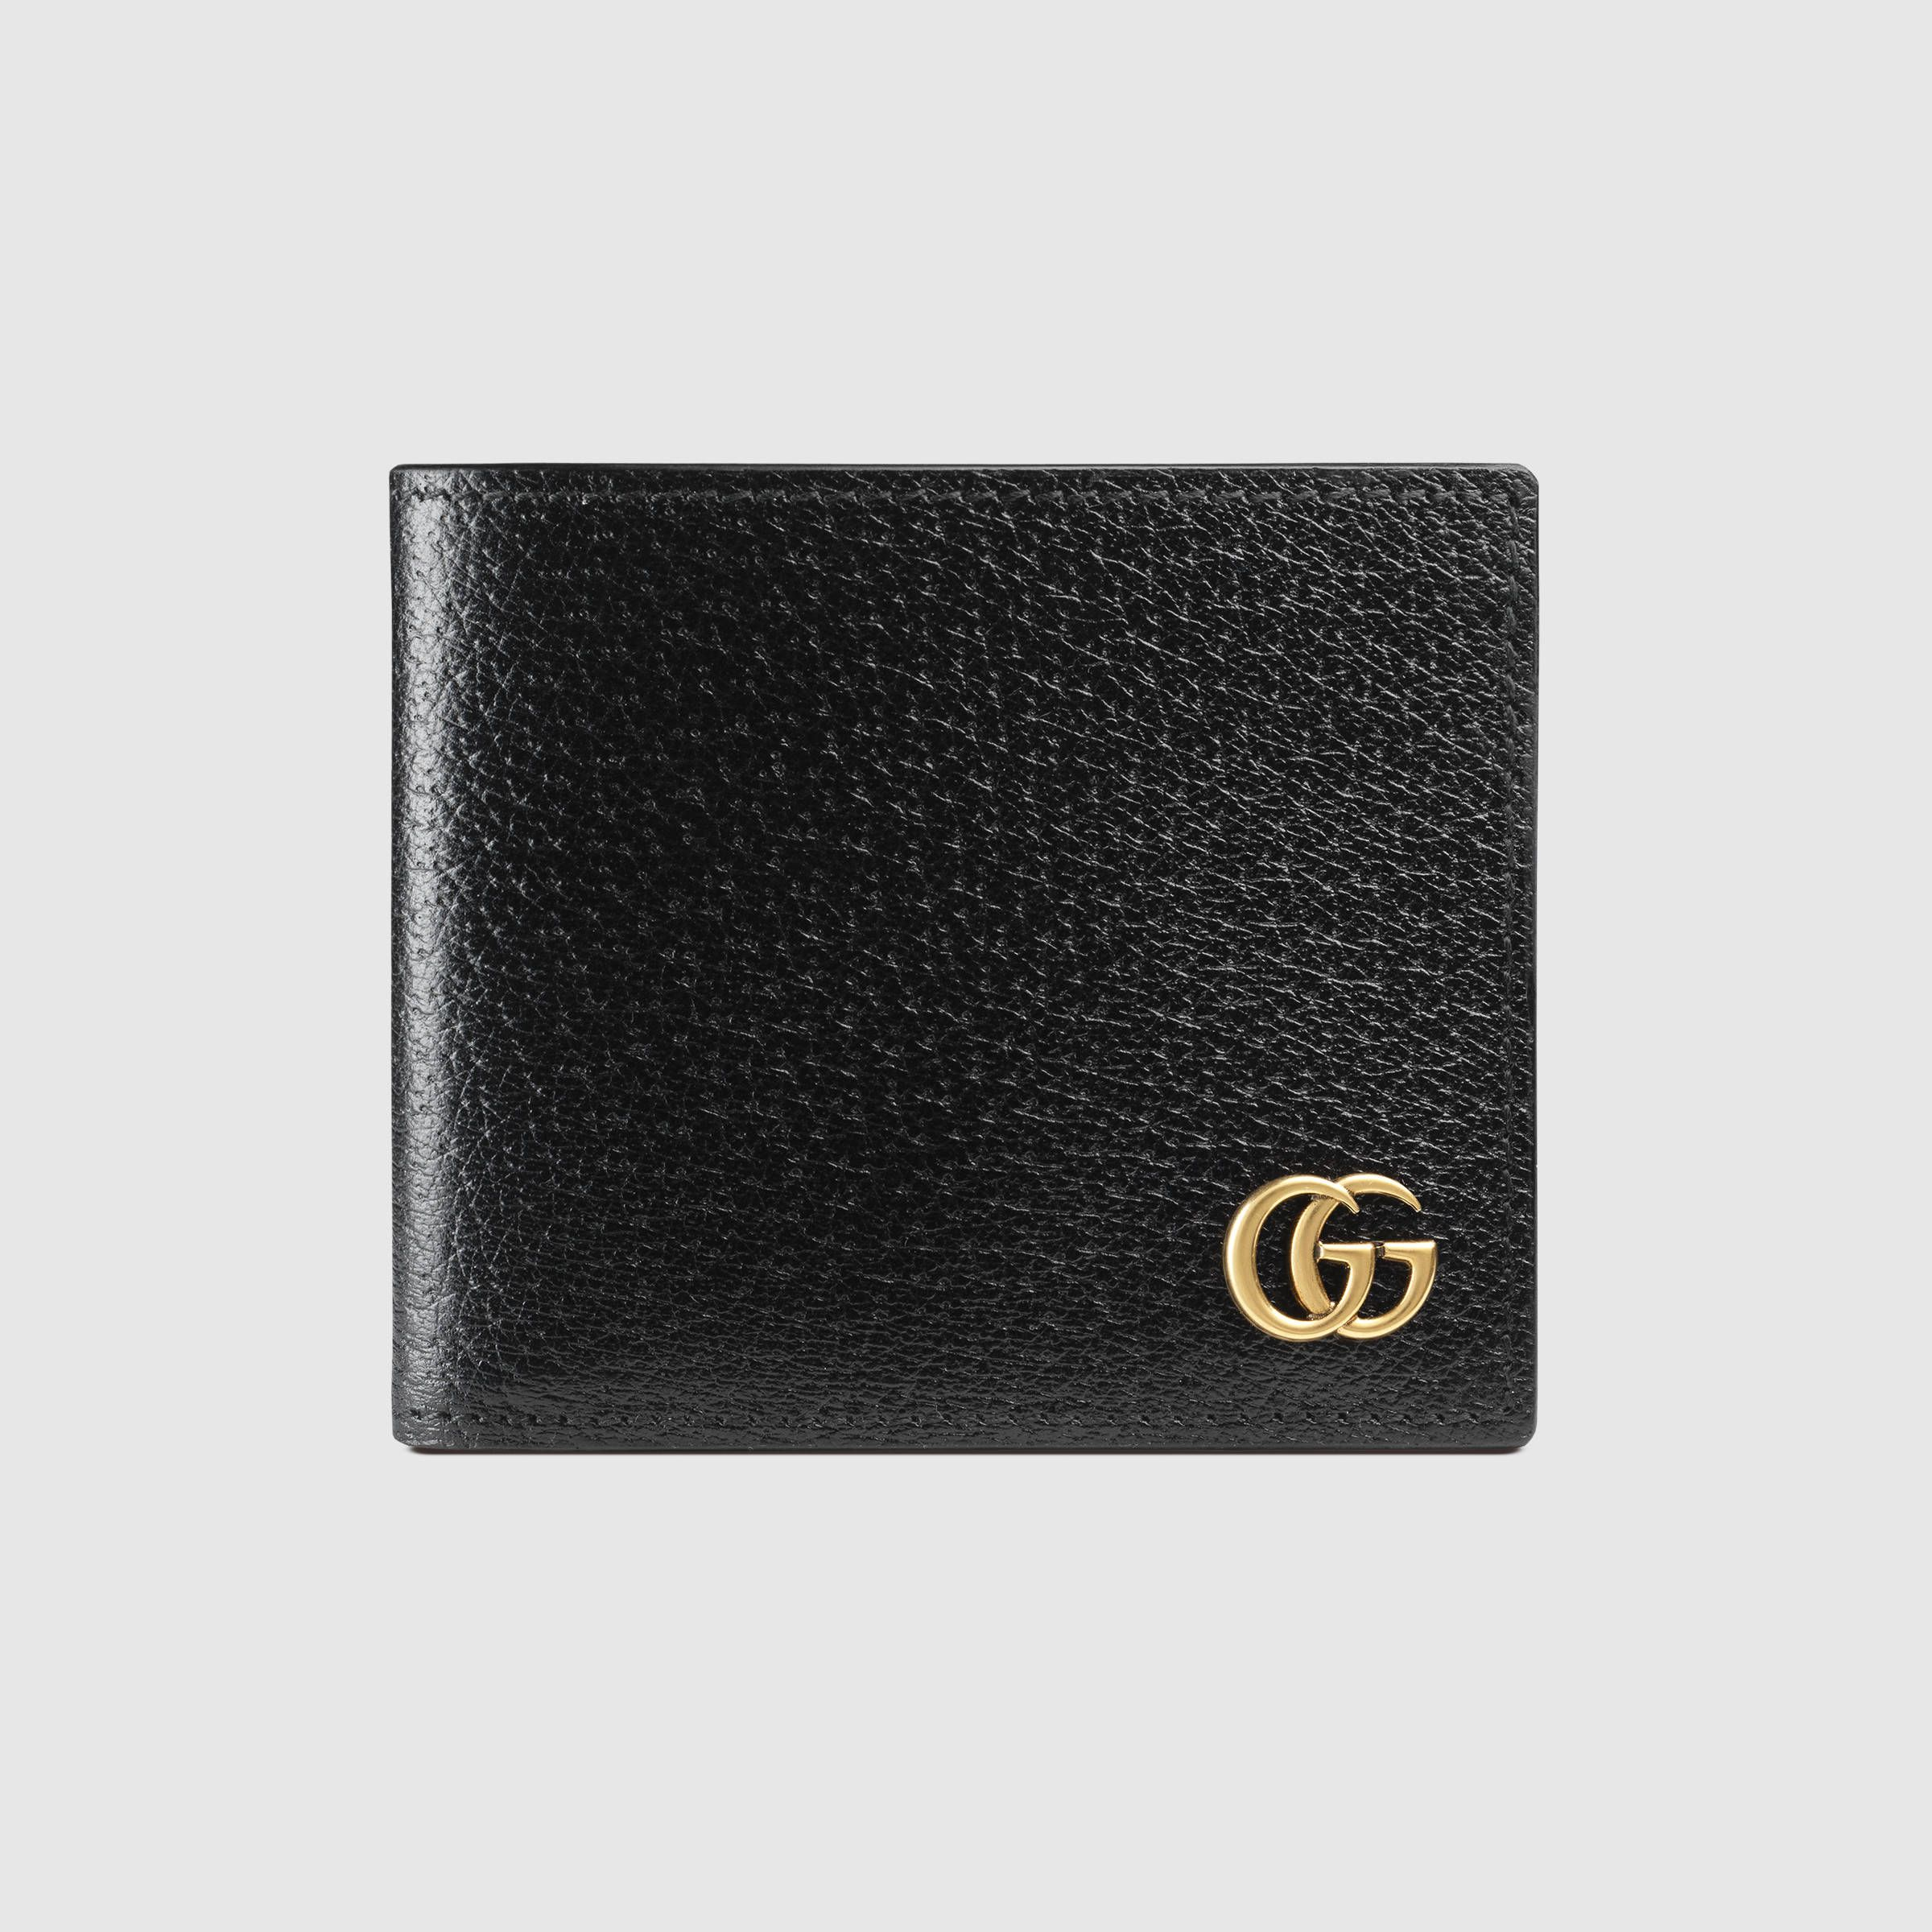 bdd51fa62d4 Gucci Men - GG Marmont leather bi-fold wallet - 428726DJ20T1000